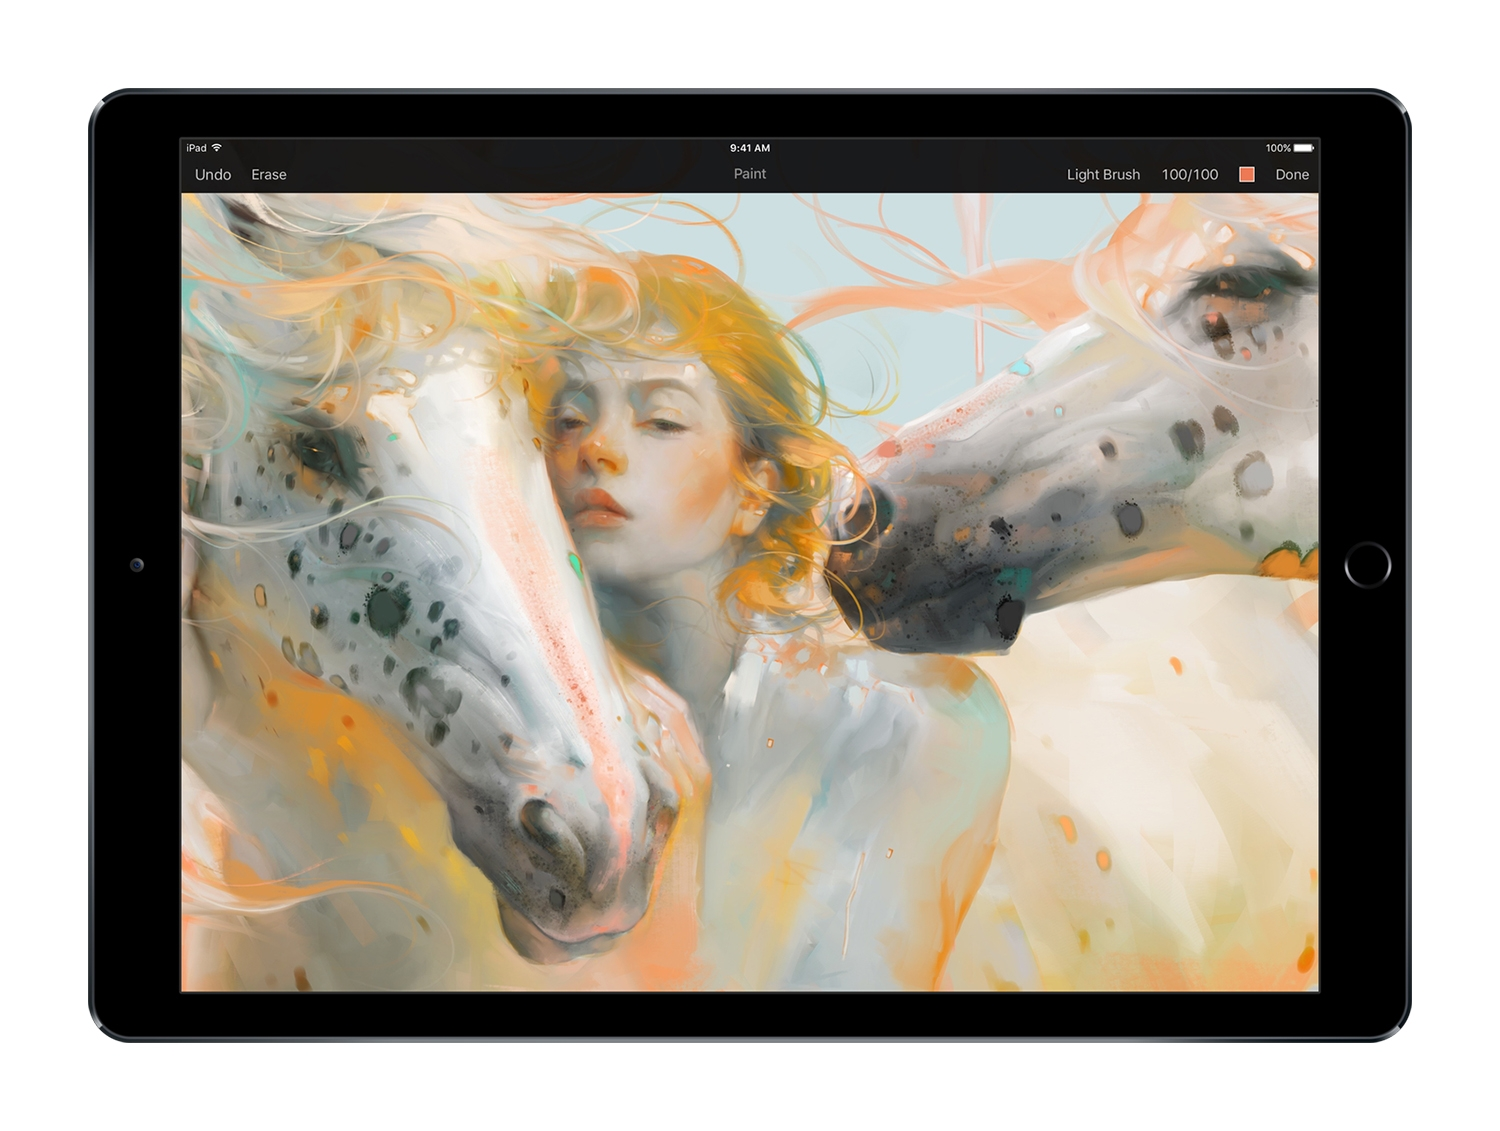 Pixelmator is available for £3.99 or US$4.99 from the iOS App Store.